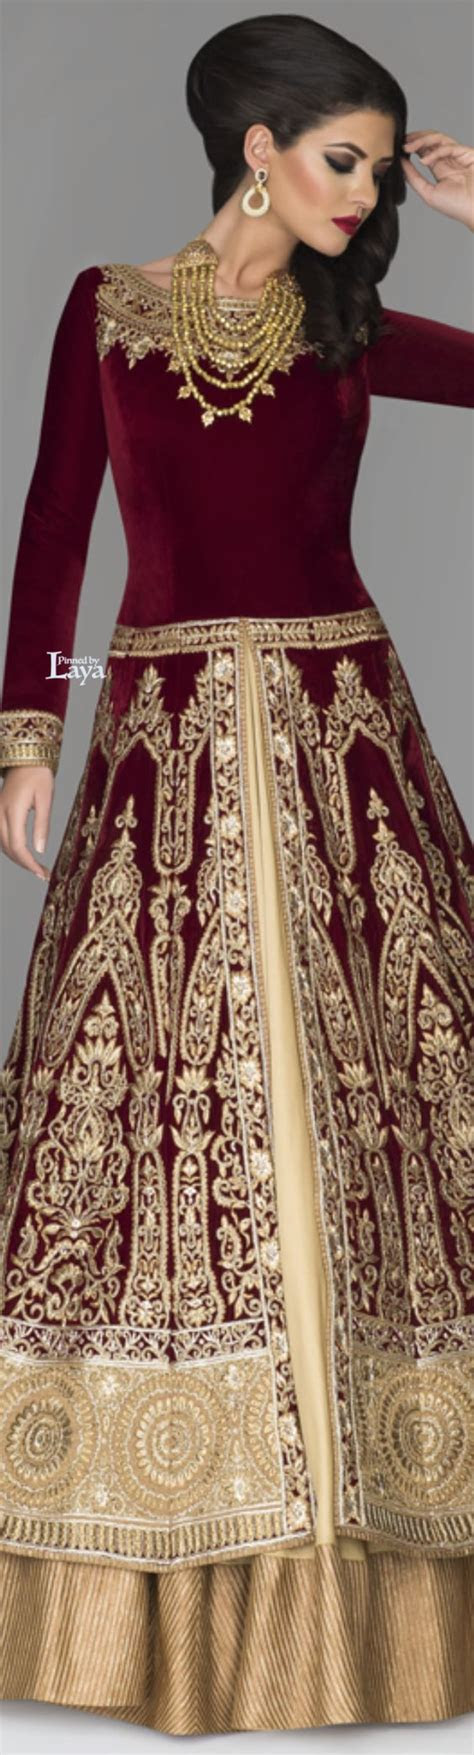 Latest Fancy & Embroidered Frocks Collection   Stylo Planet